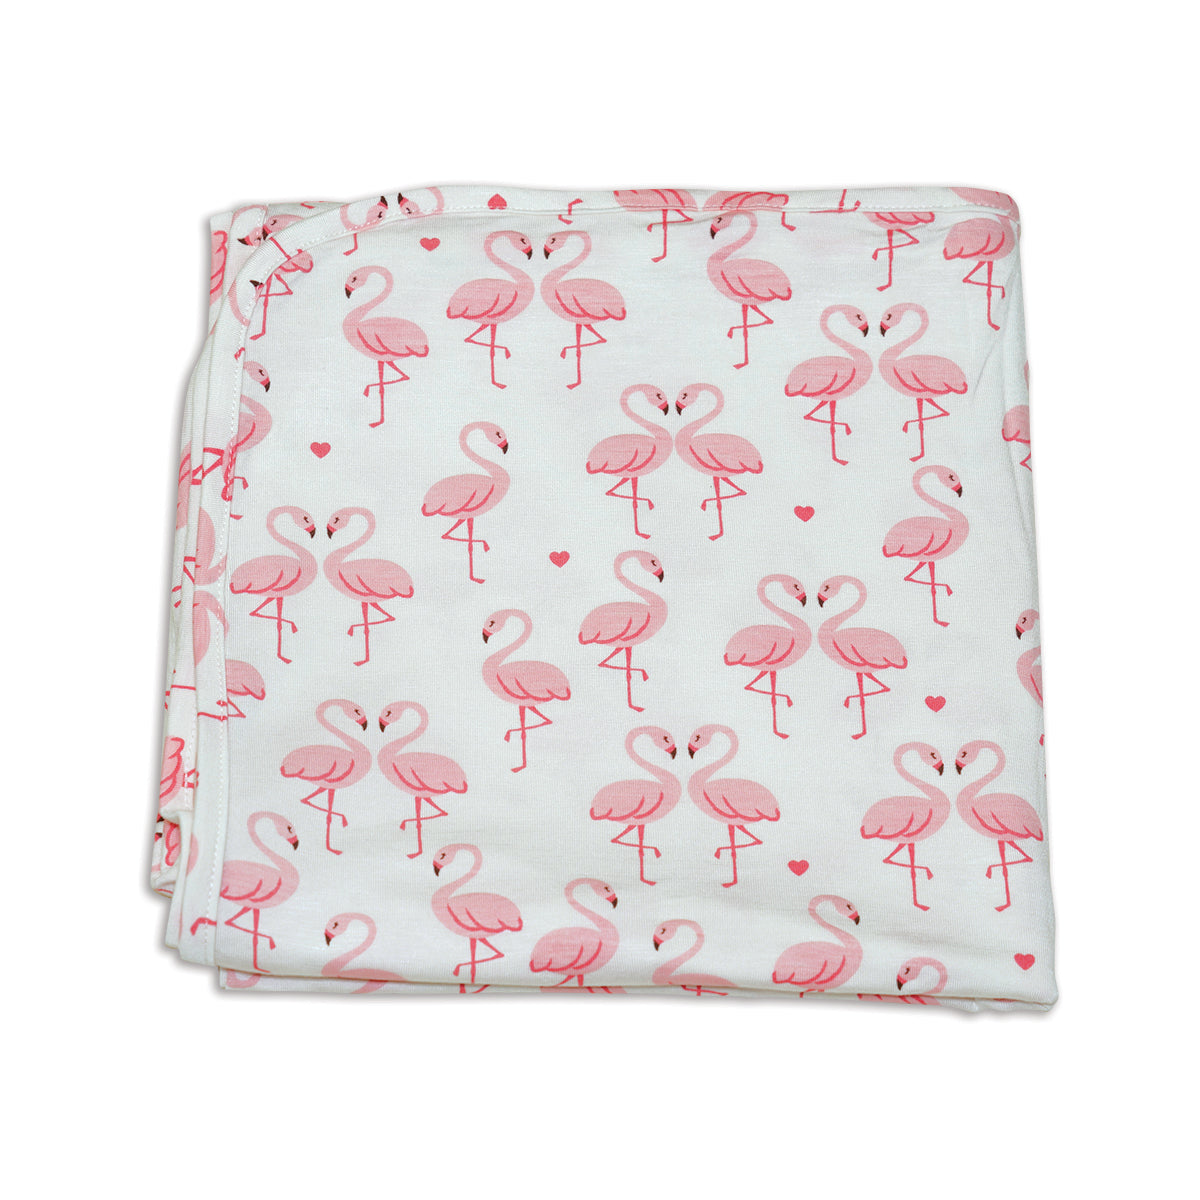 Bamboo Swaddle Blanket (Flamingo Love Print)